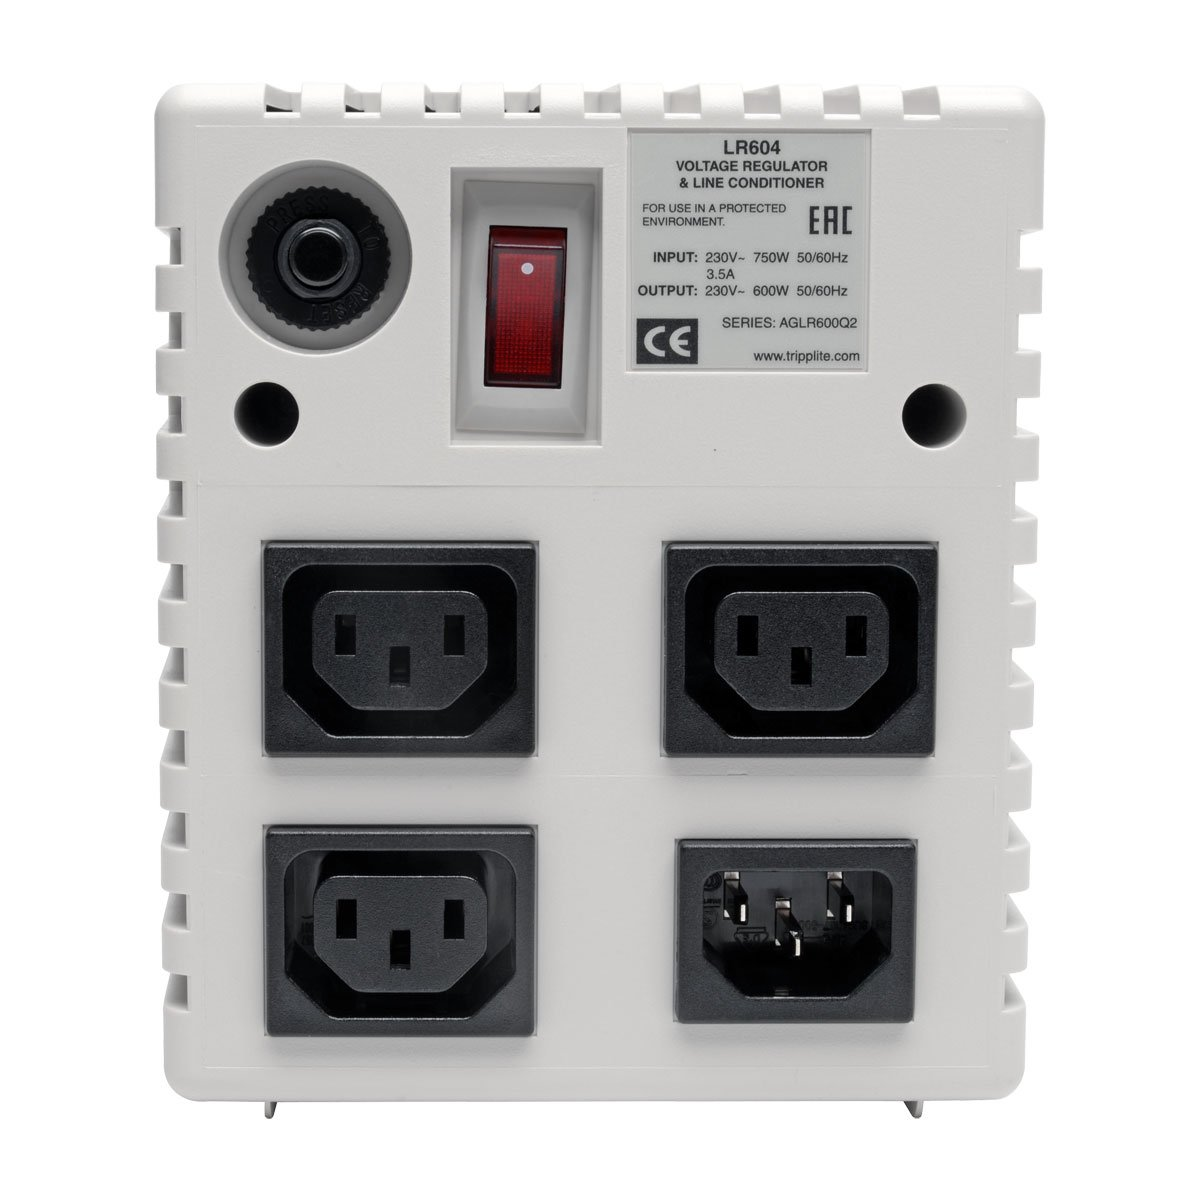 Tripp Lite Ls604 600w Wallmount Line Conditioner 4 Outlets 6ft Cord